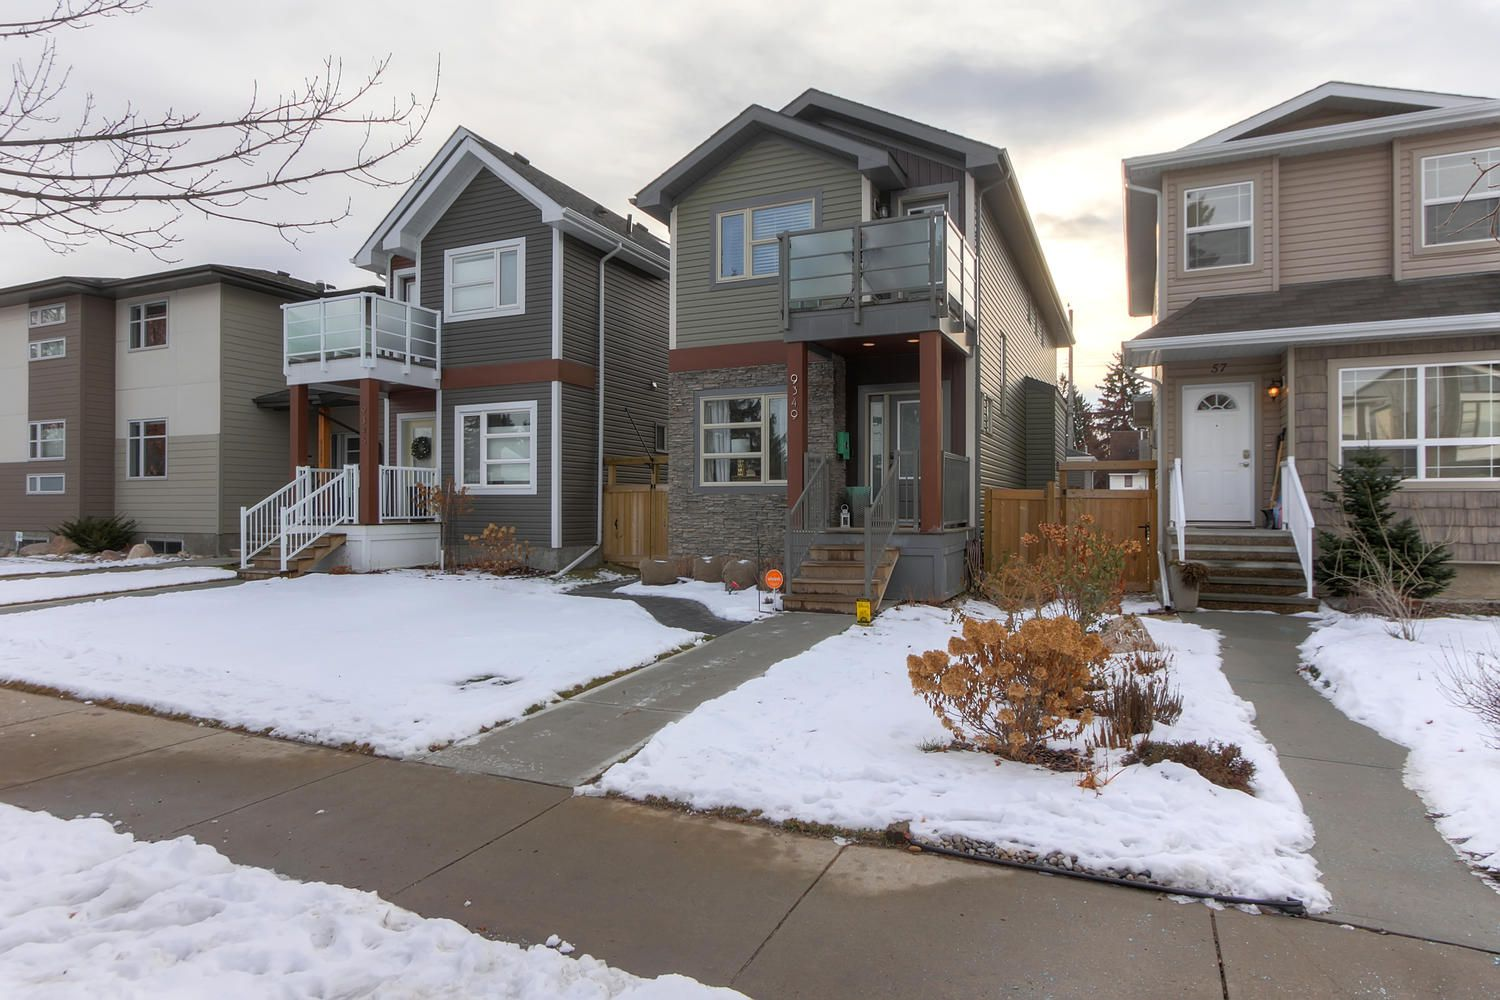 Main Photo: 9349 74 Avenue NW in Edmonton: Zone 17 House for sale